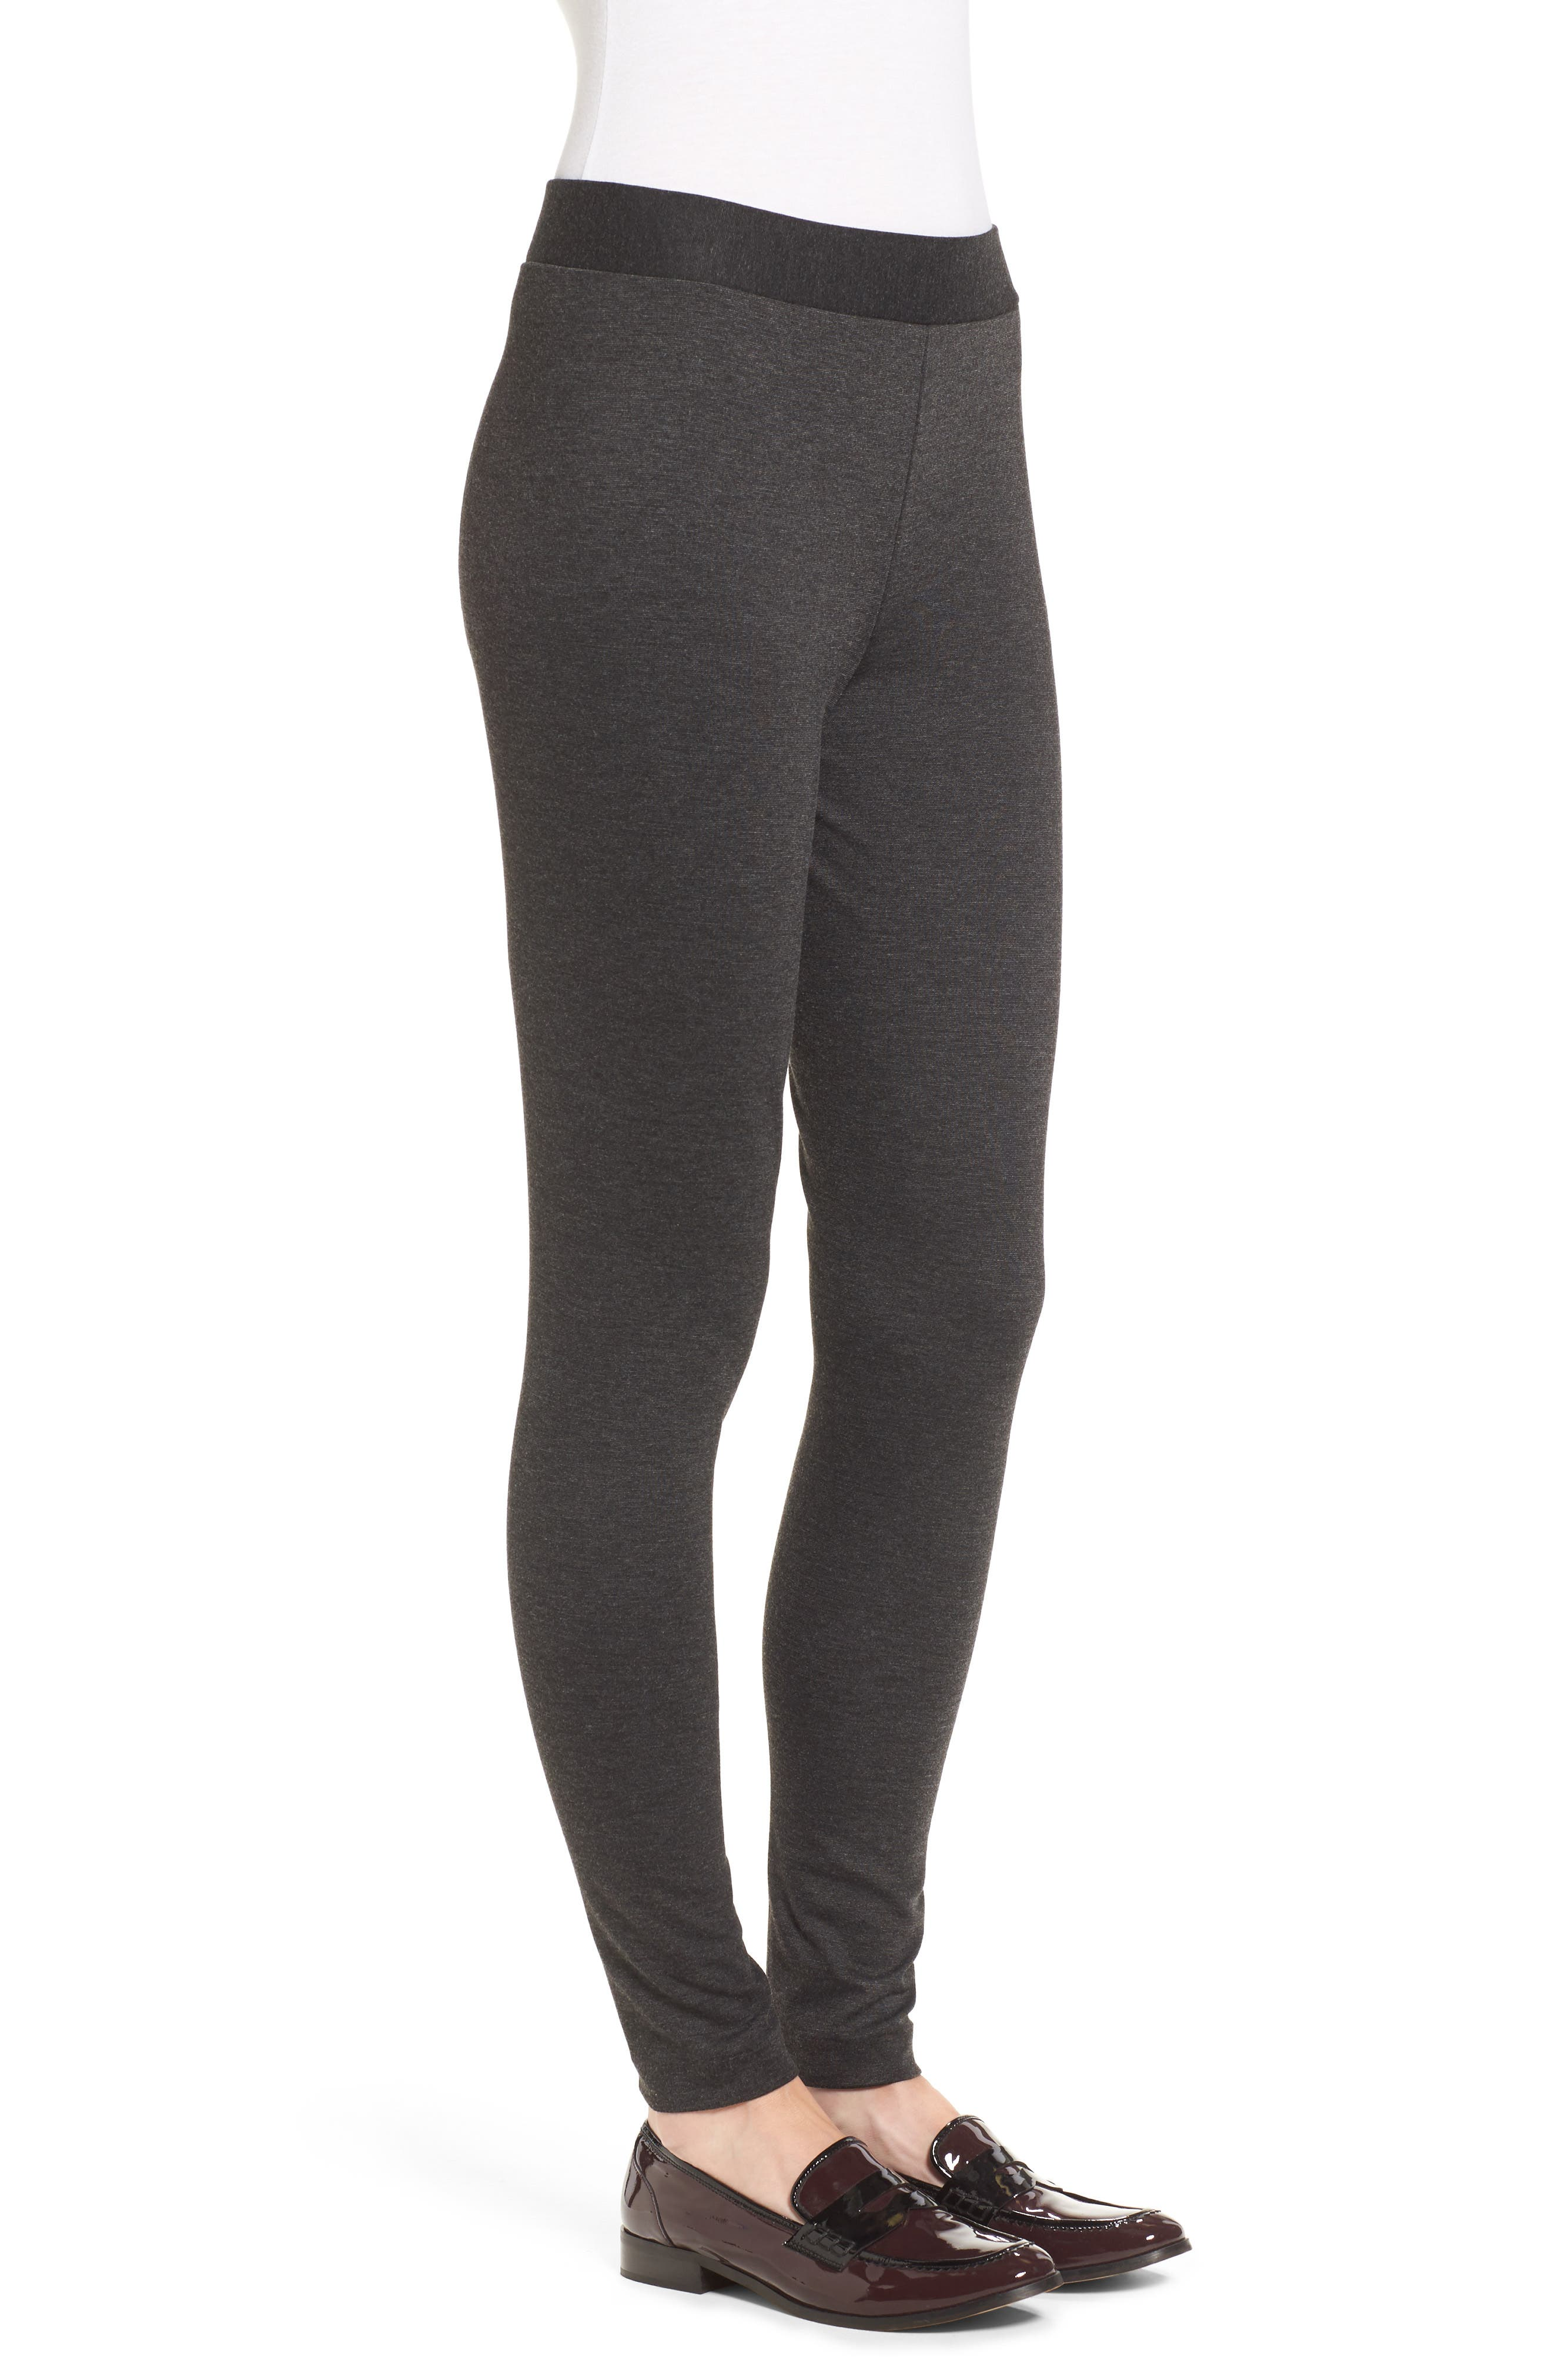 VINCE CAMUTO, Two by Vince Camuto Seamed Back Leggings, Alternate thumbnail 4, color, DARK HEATHER GREY